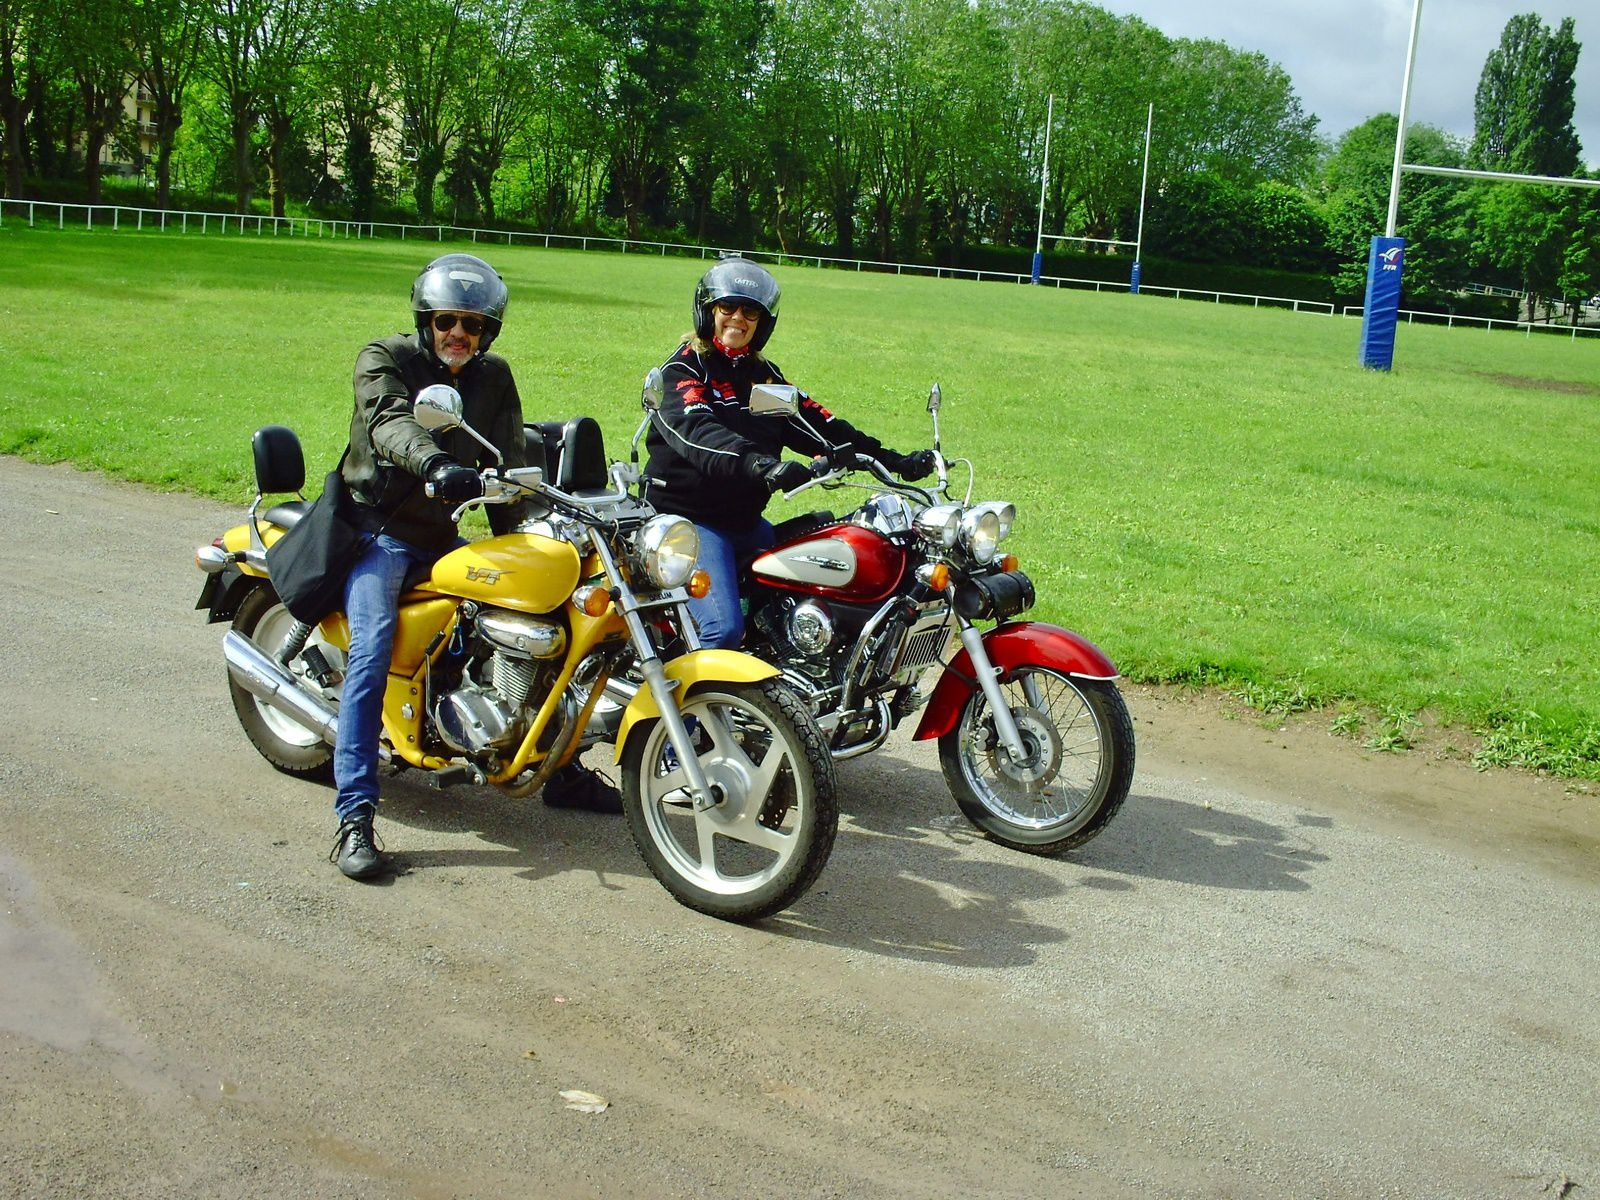 Rencontre entre bikers